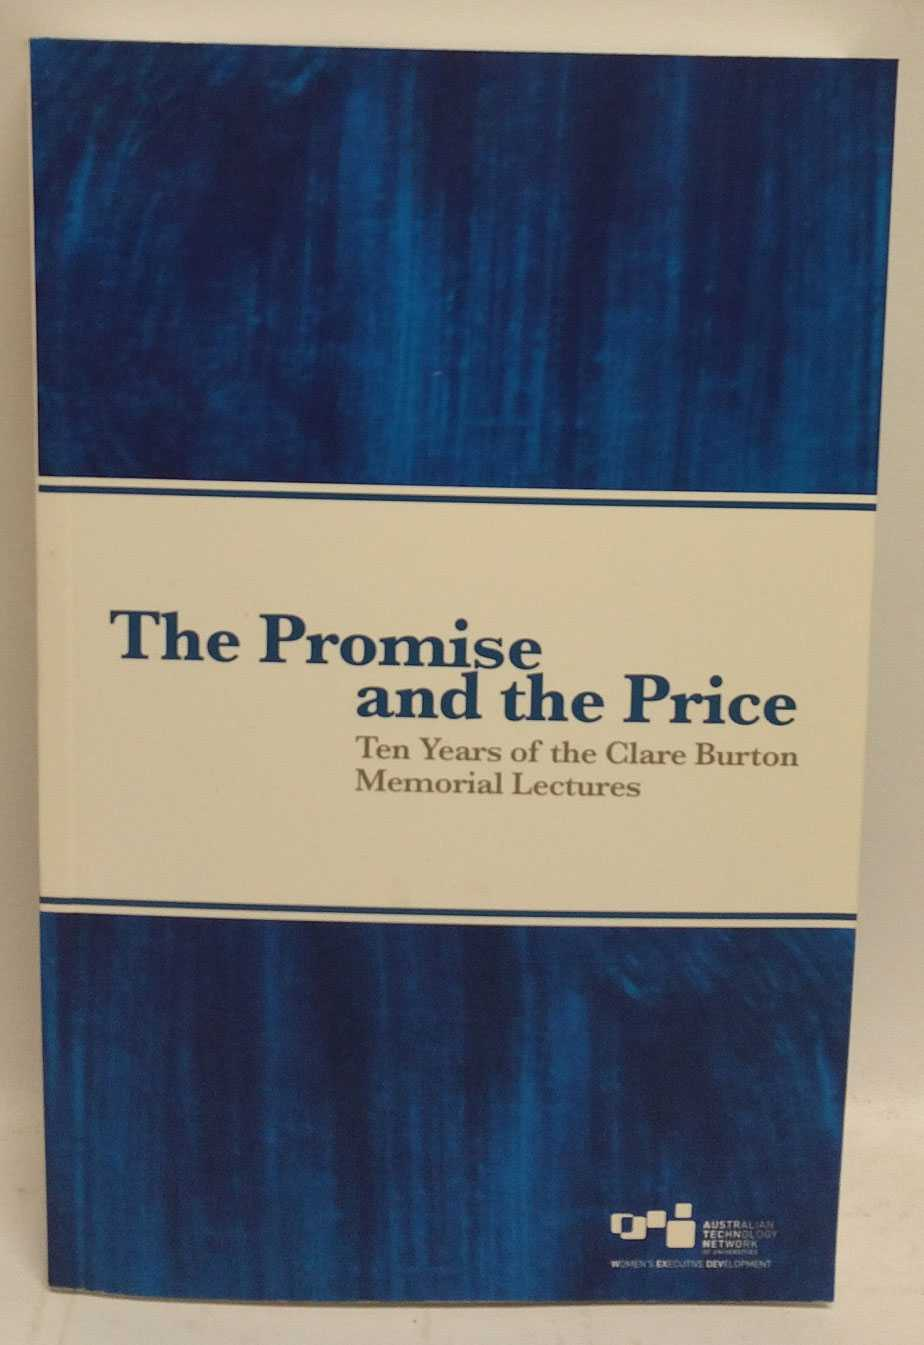 The Promise and the Price: Ten Years of the Clare Burton Memorial Lectures, ATN WEXDEV